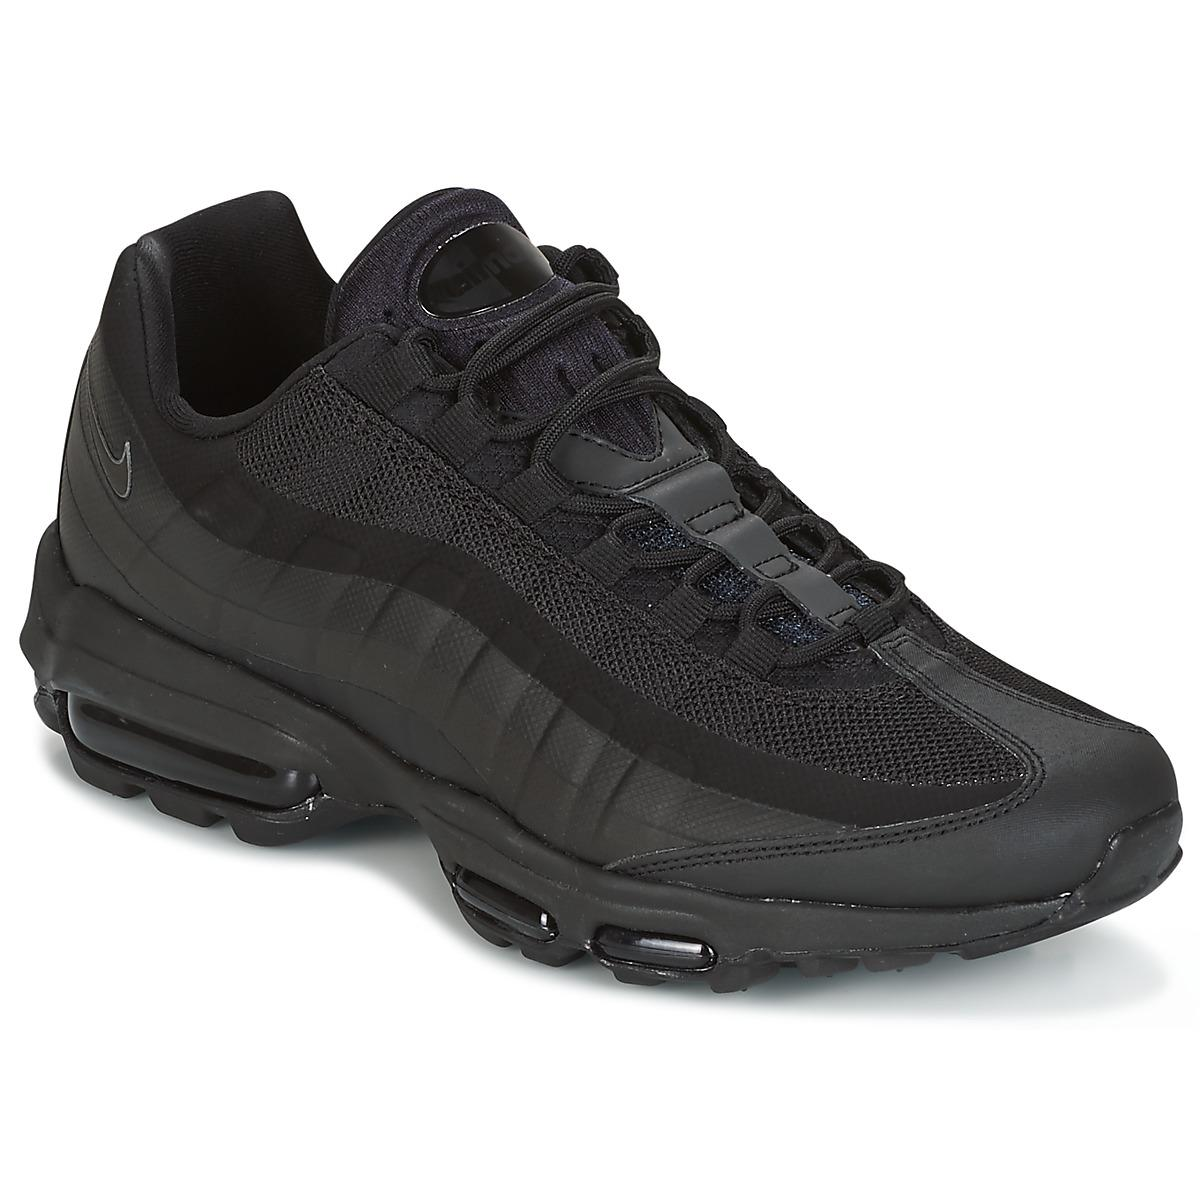 9f90097c73 Nike Air Max 95 Ultra Essential Men's Shoes (trainers) In Black in ...